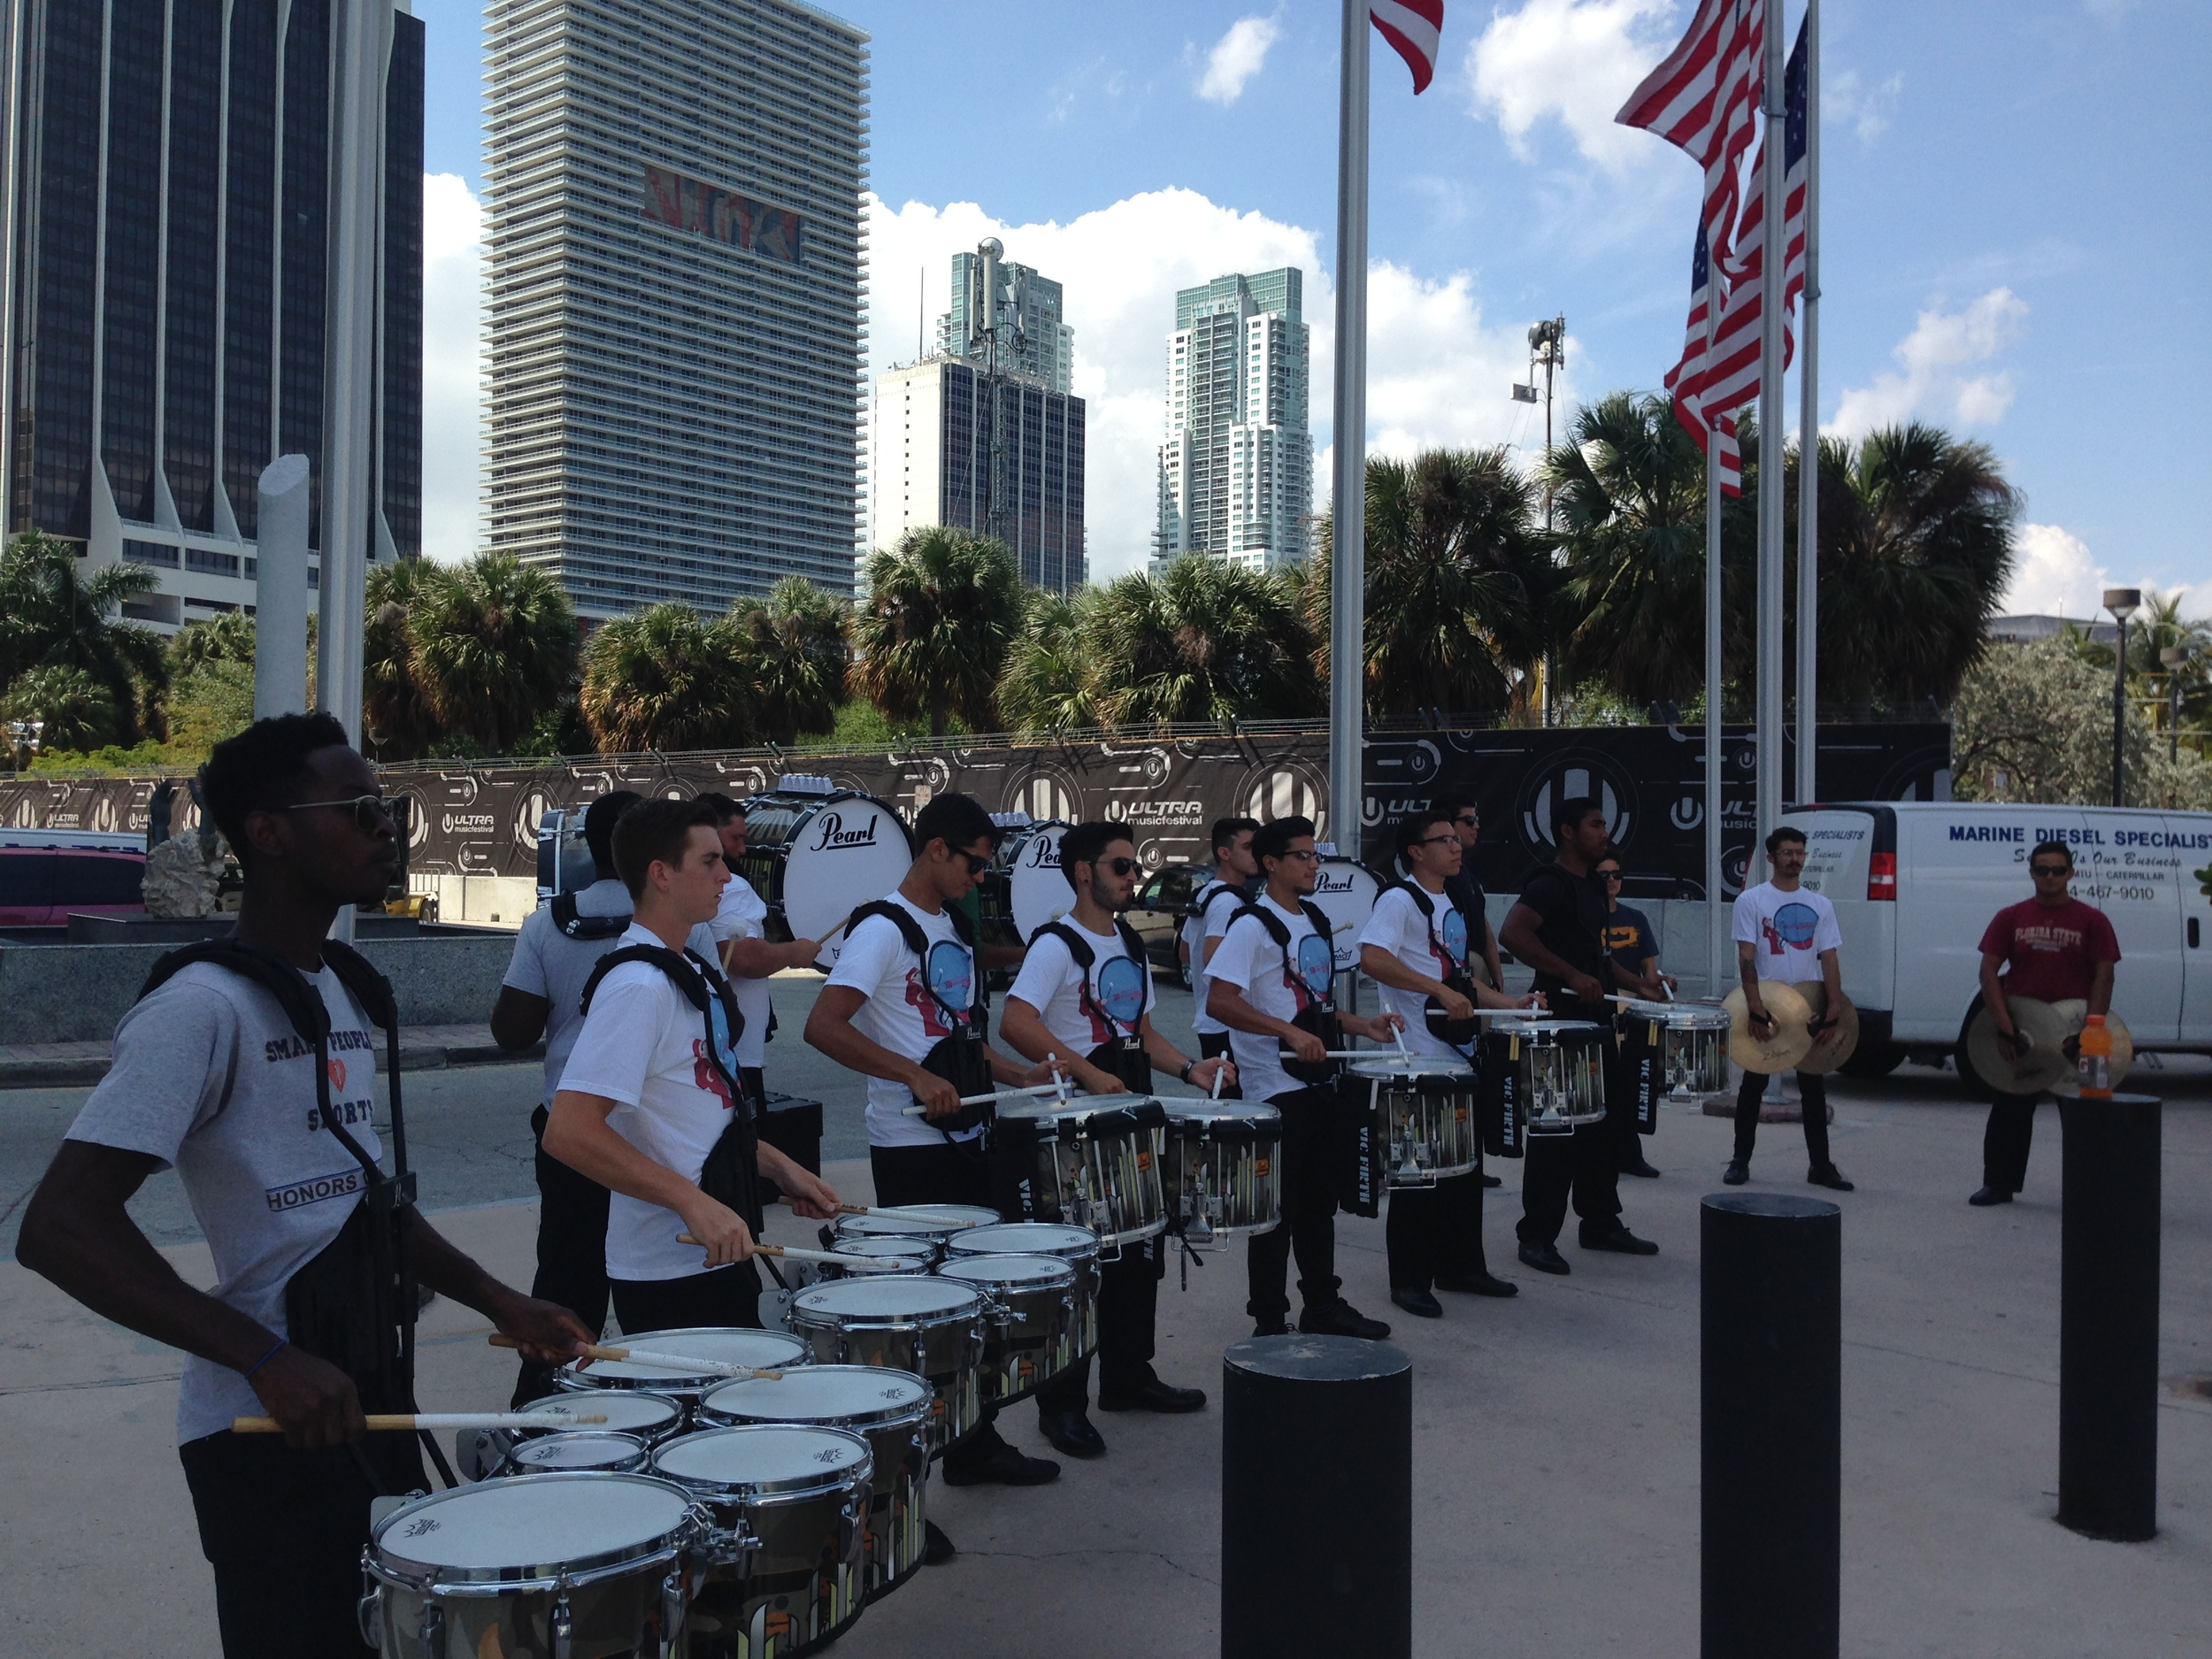 Warming up before the show in Downtown Miami